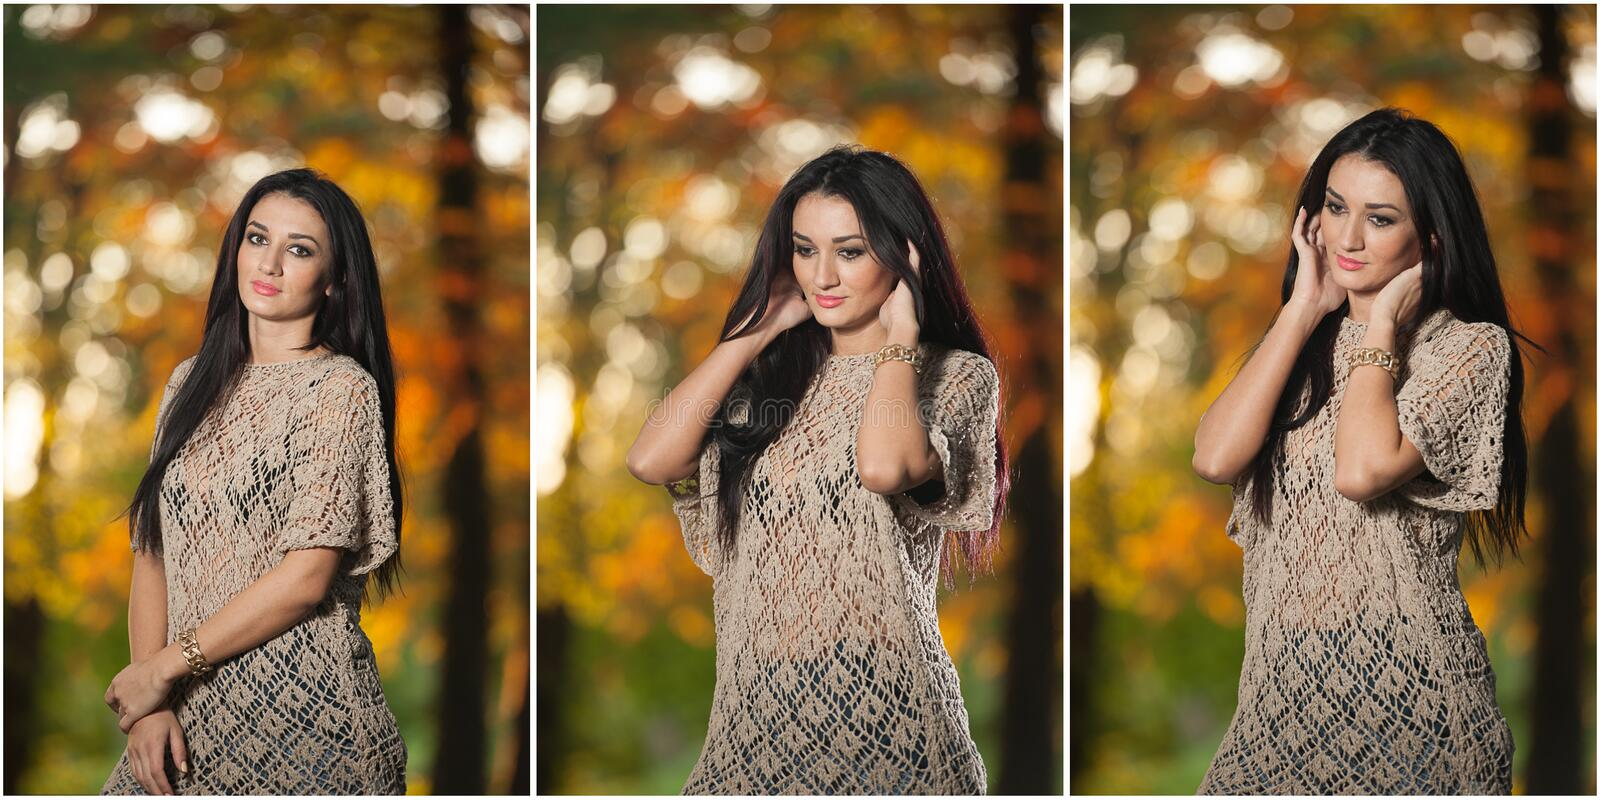 Beautiful woman in lace blouse posing in autumnal park. Young brunette woman spending time in forest during fall season. Long dark hair attractive woman stock images